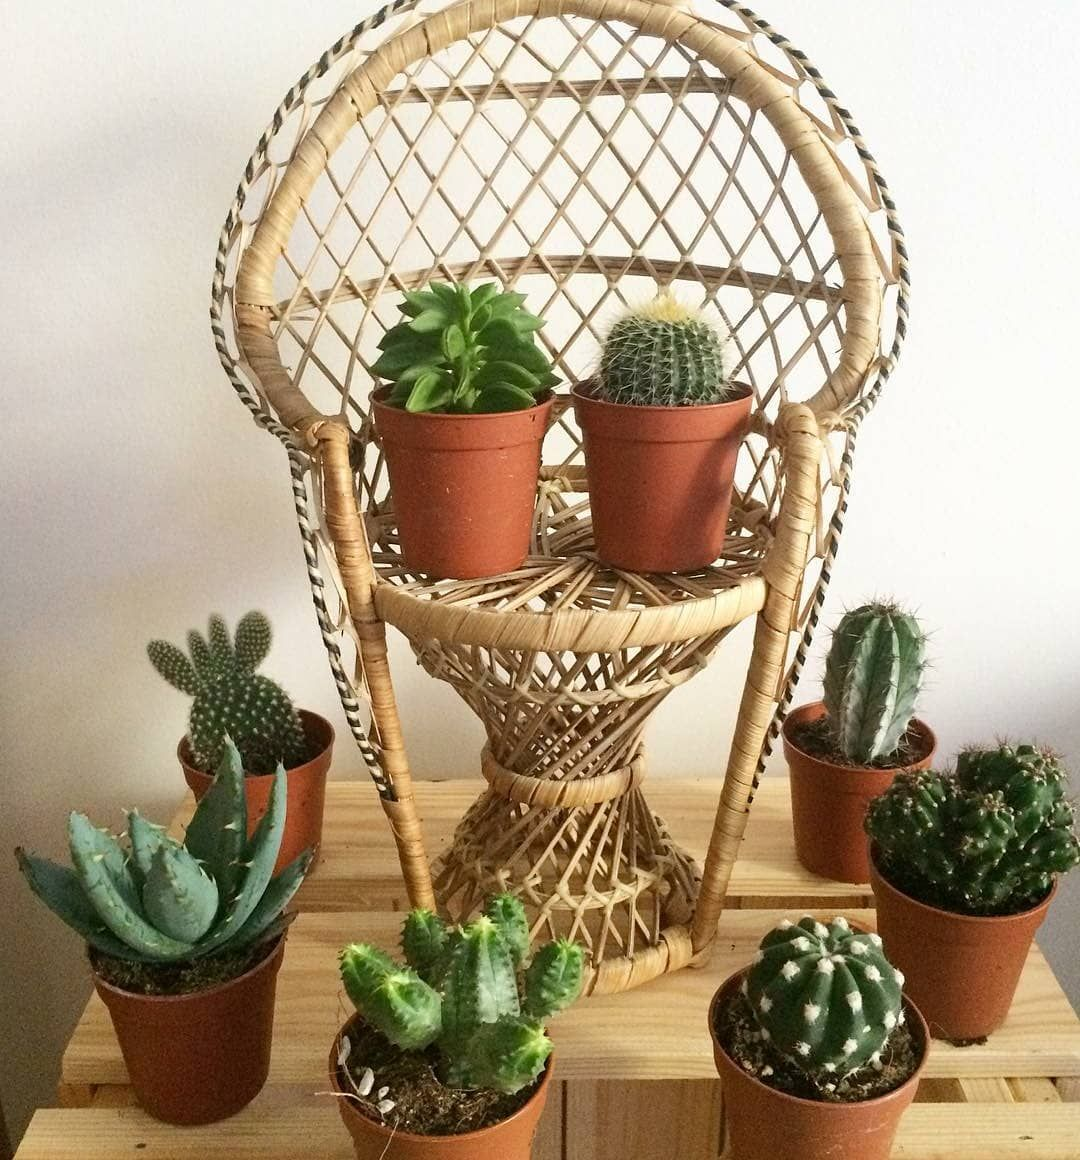 Pin by Trâm on My garden | Pinterest | Cacti and Gardens